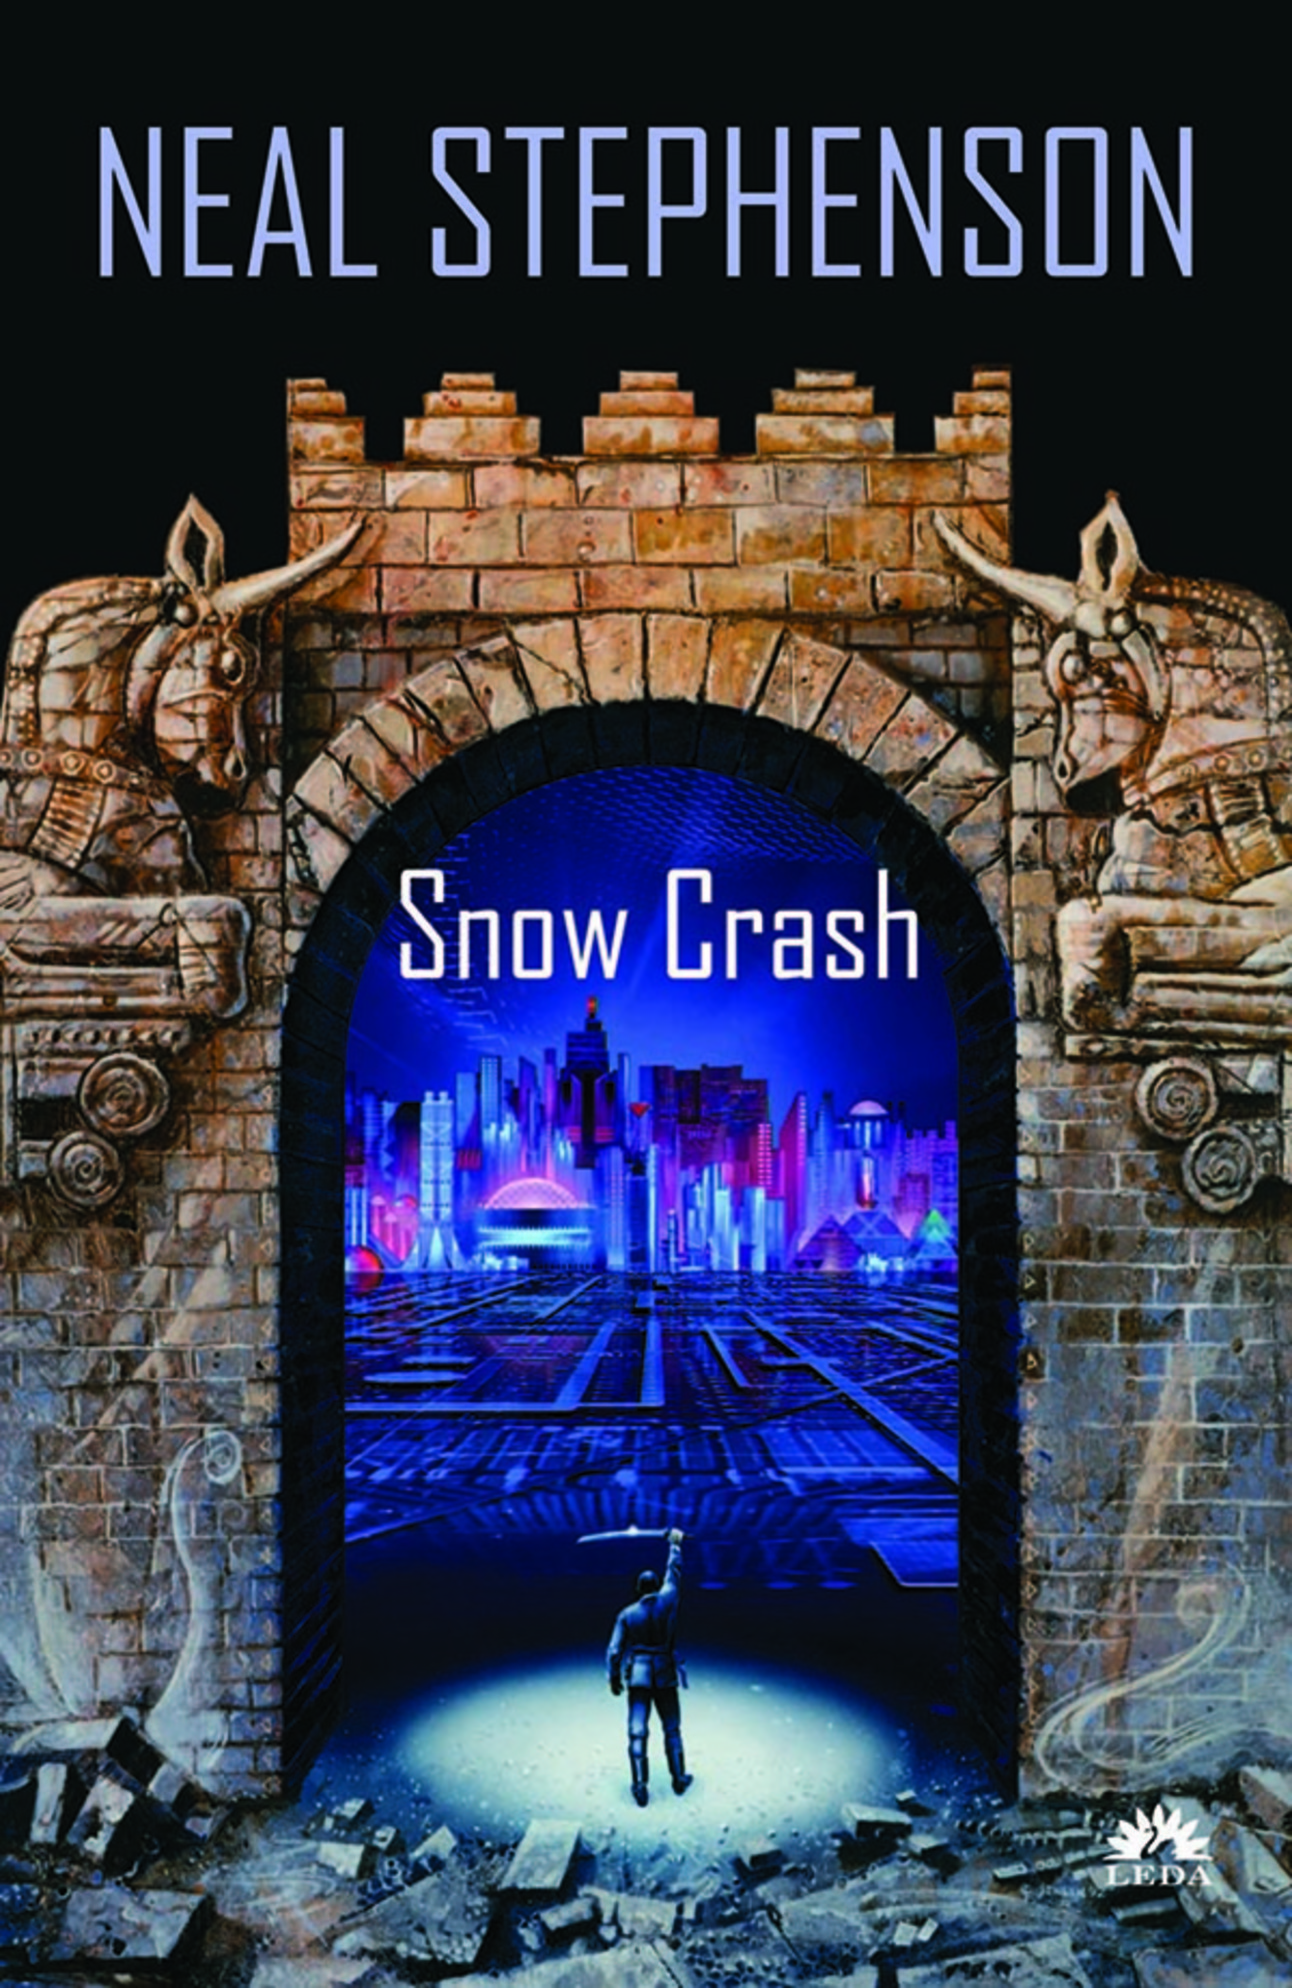 neal_stephenson_snow_crash_01.jpg